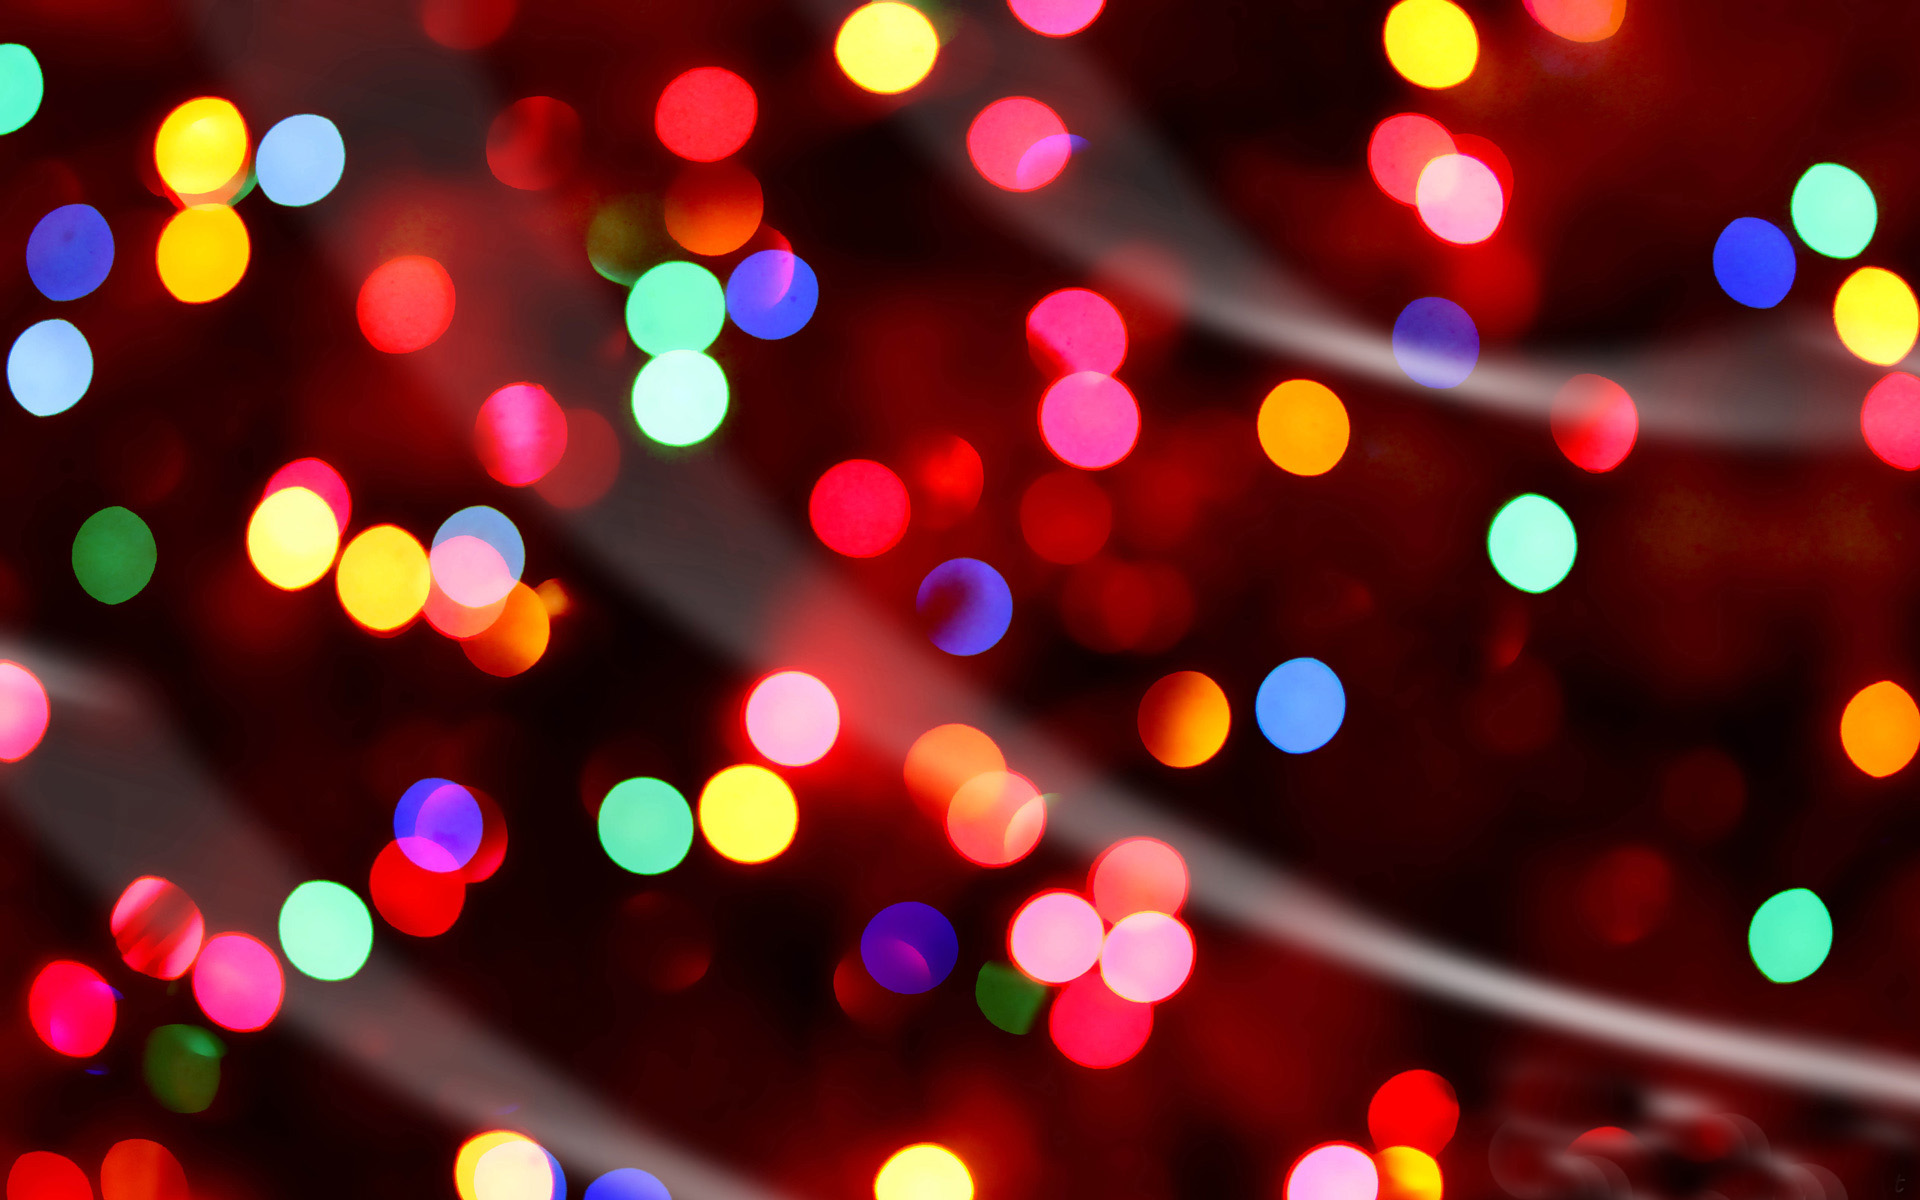 Christmas Lights Wallpaper 24364 1920x1200 px ~ HDWallSource.com